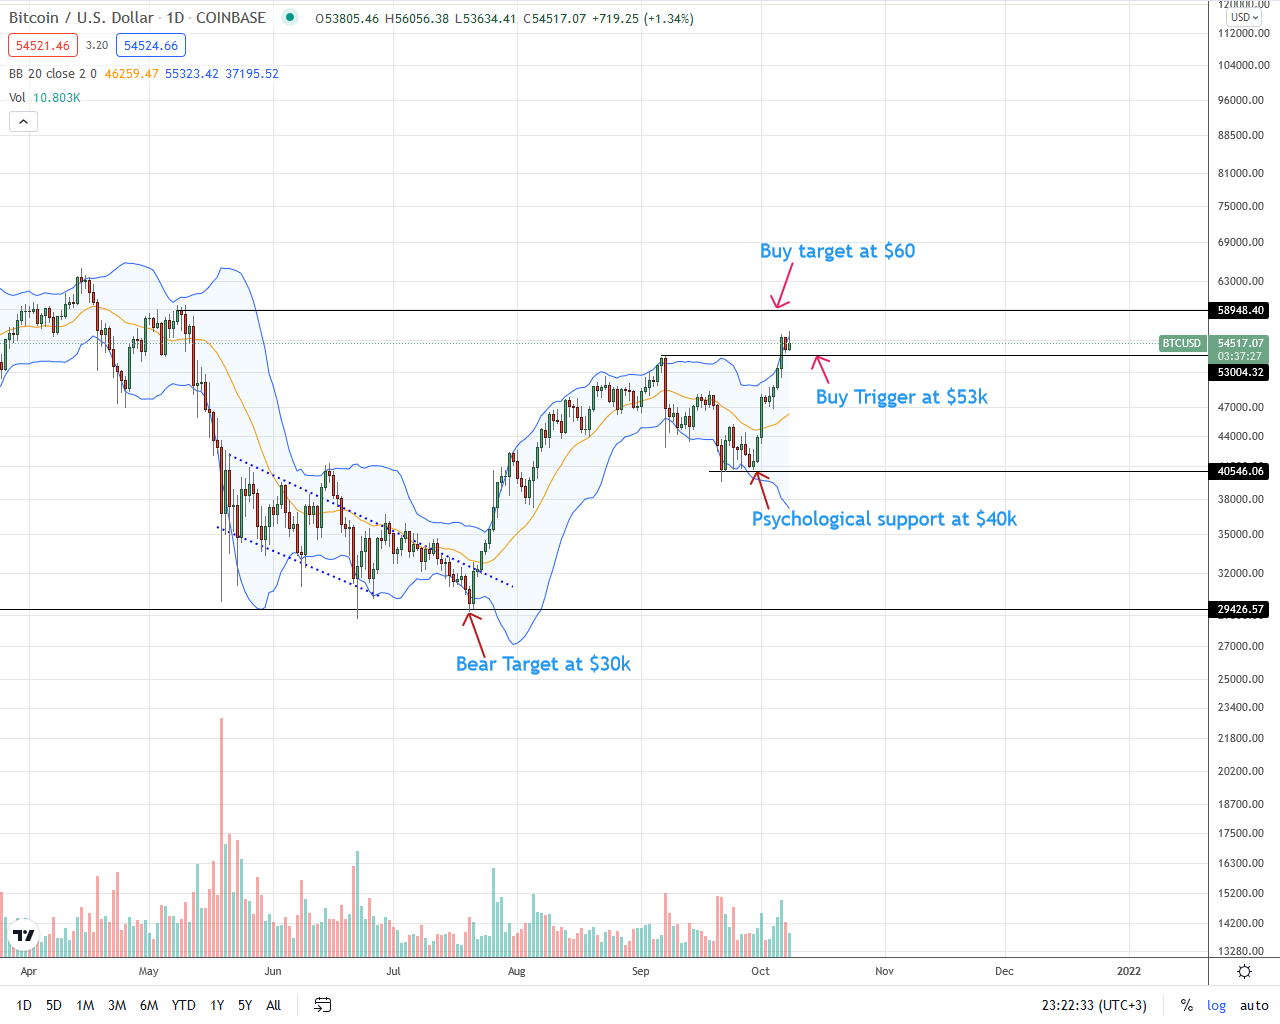 Bitcoin Daily Price Chart for October 9